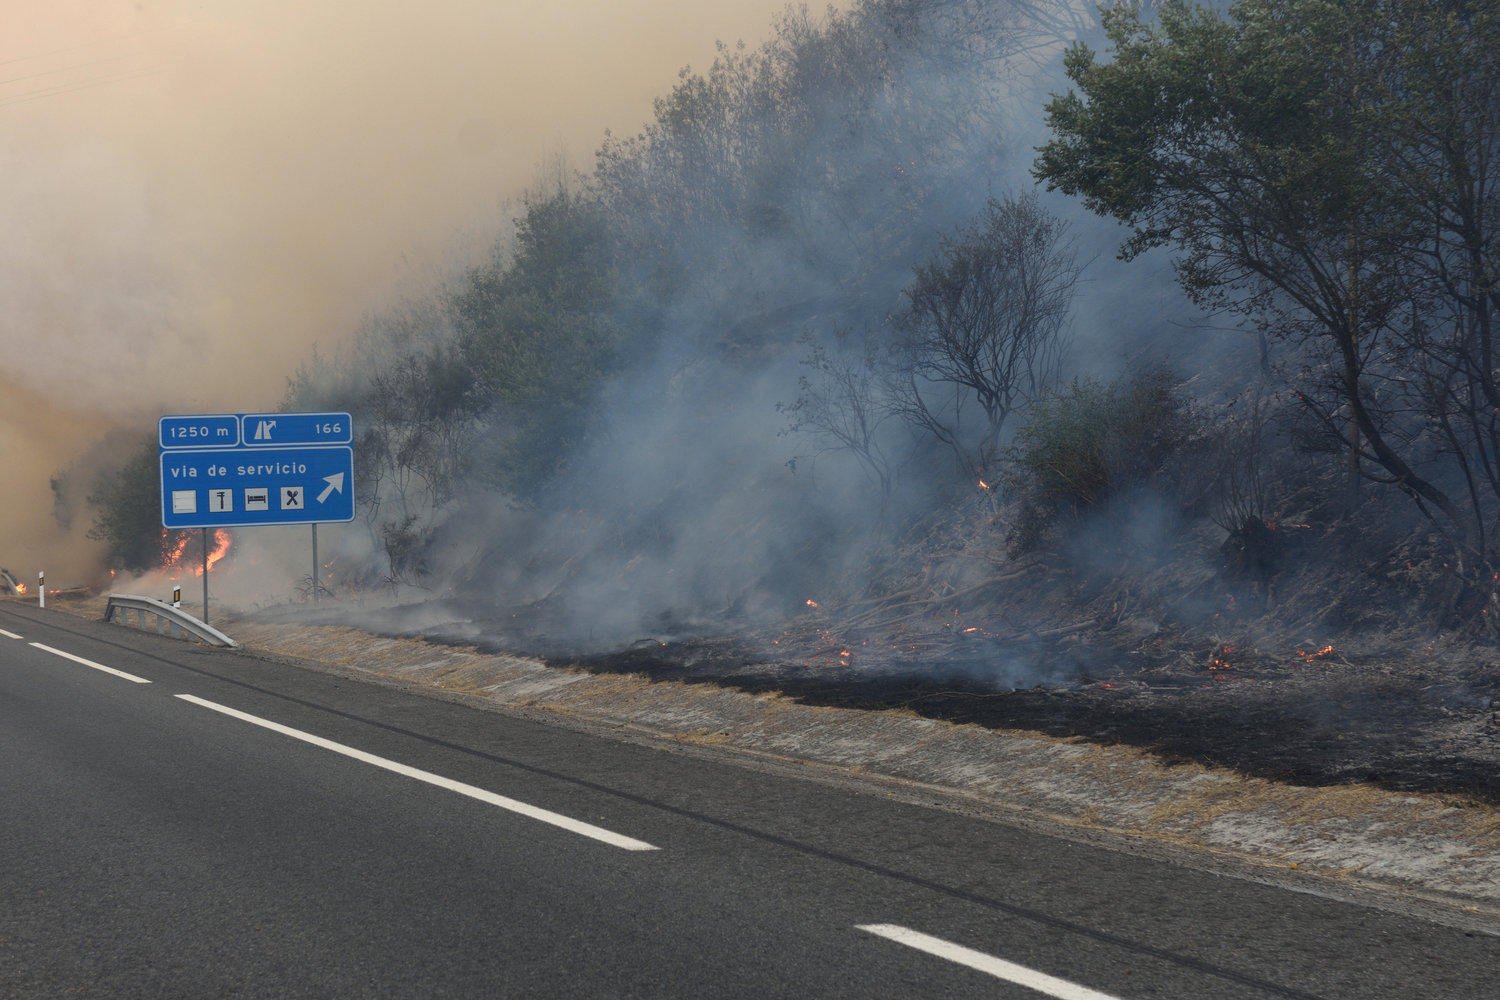 Forest Fire in Spain close to the road (c) Shutterstock